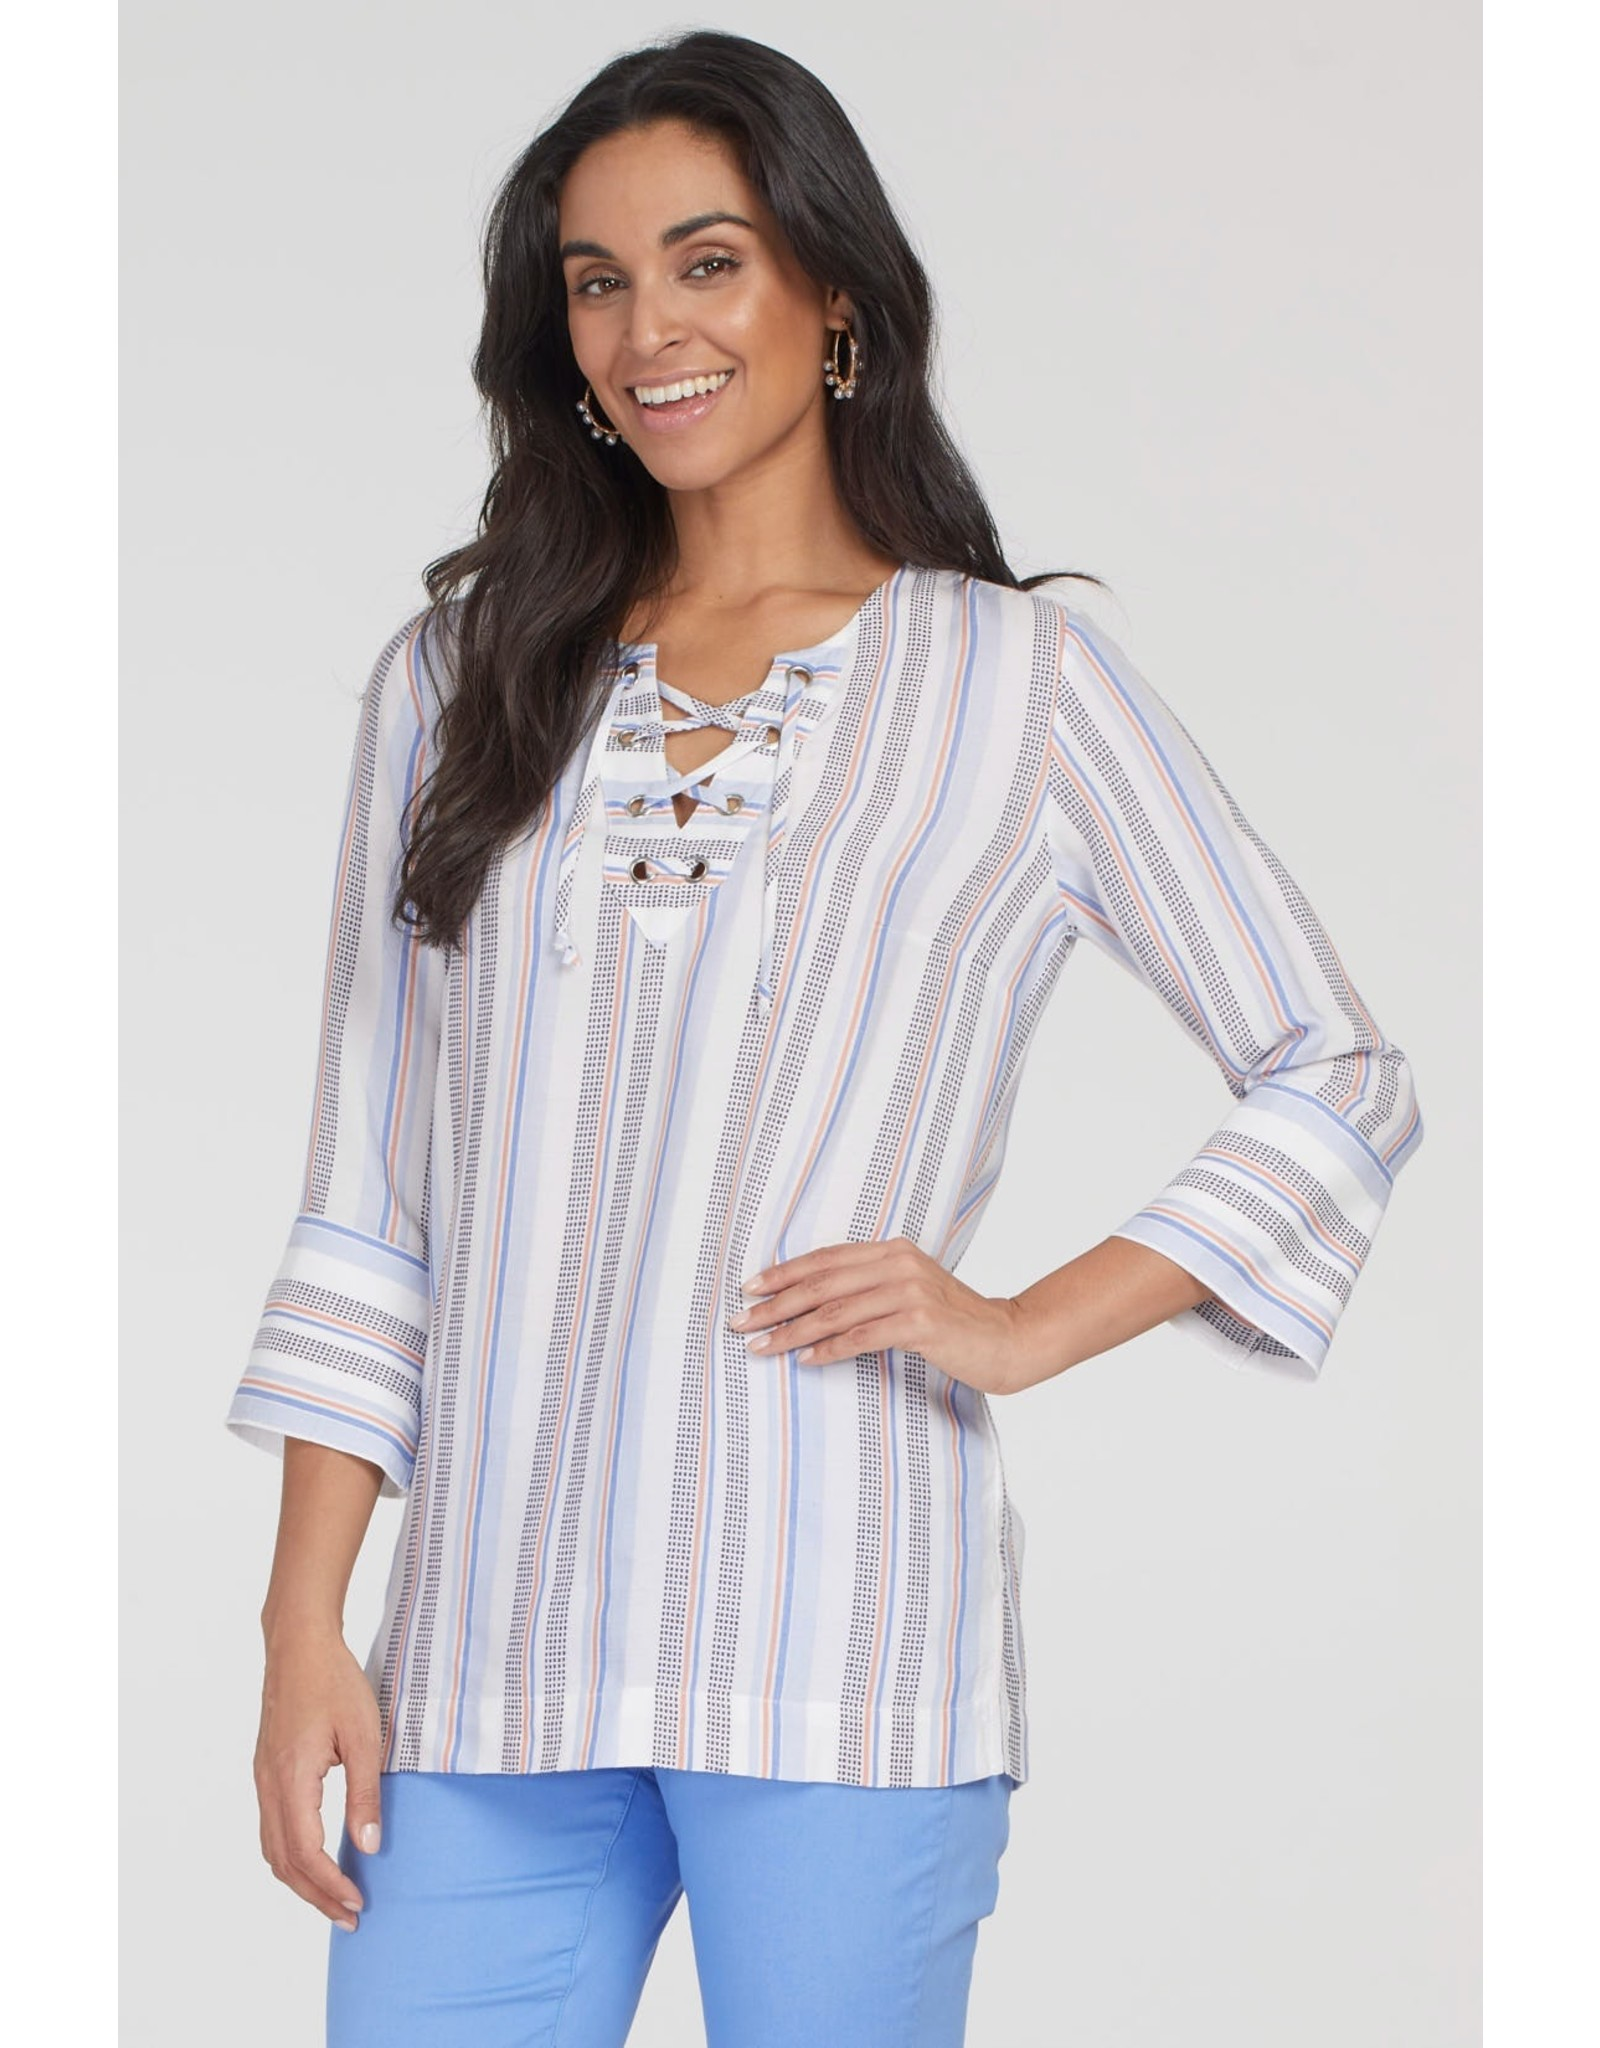 Tribal Long-Sleeved Tunic with Lace Up Neck 69930 (S1)